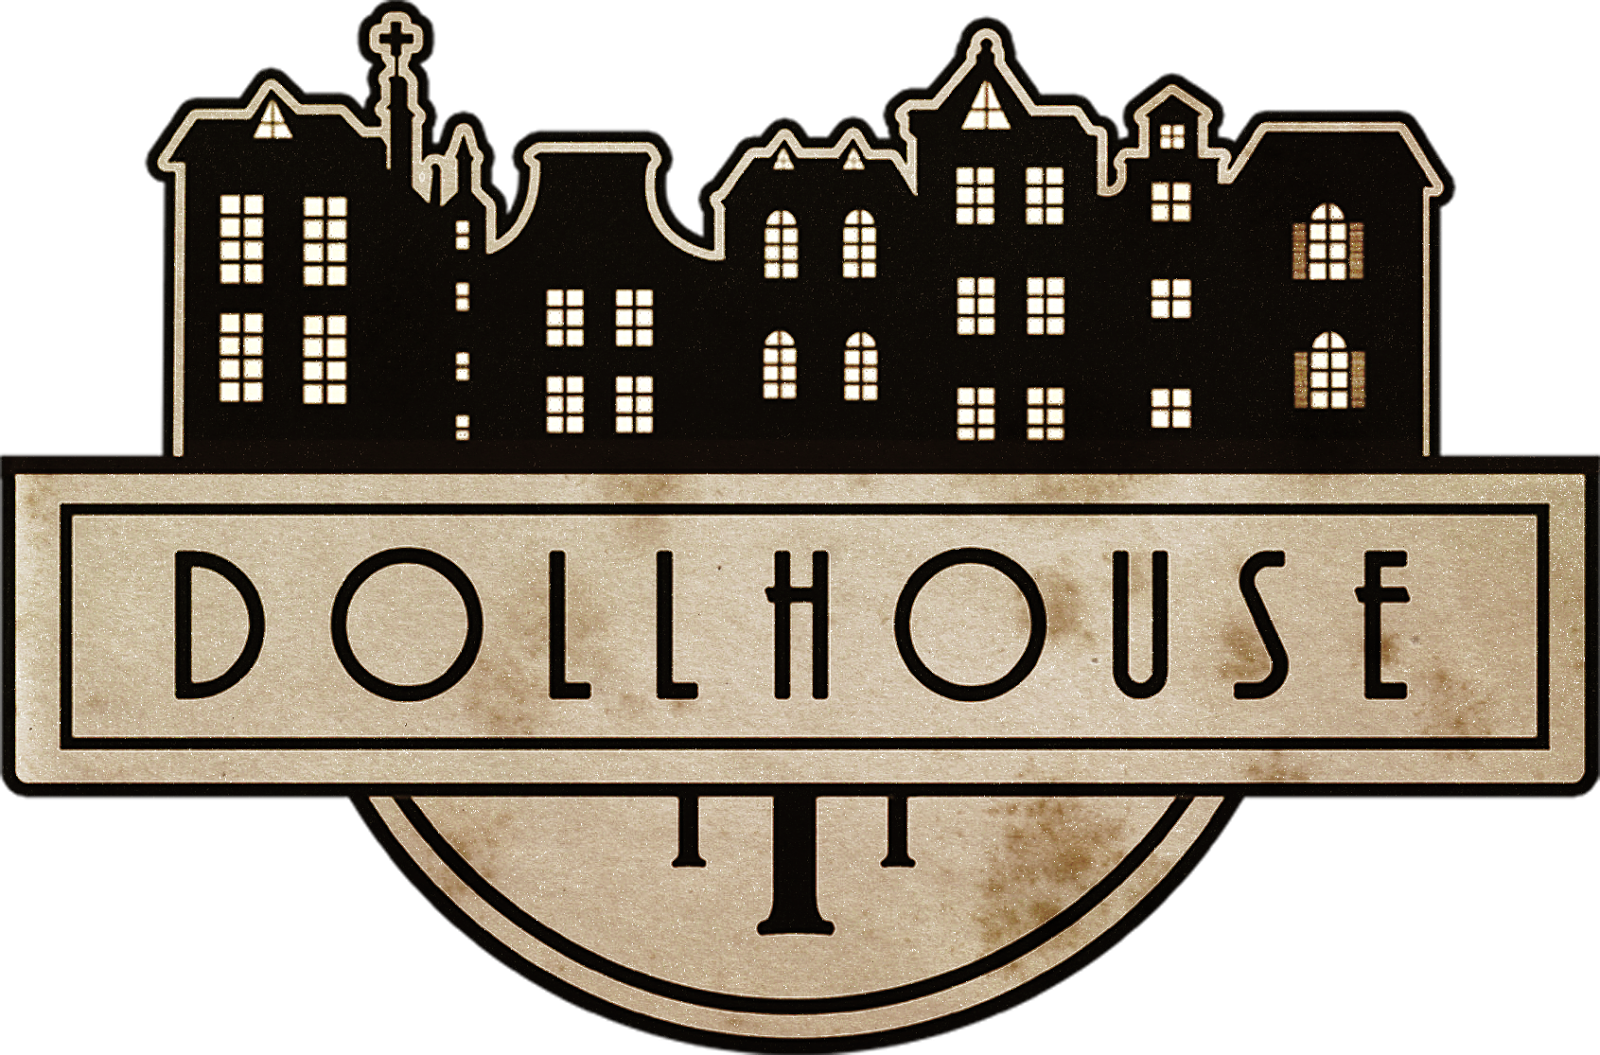 Dollhouse is back with a new look and release date